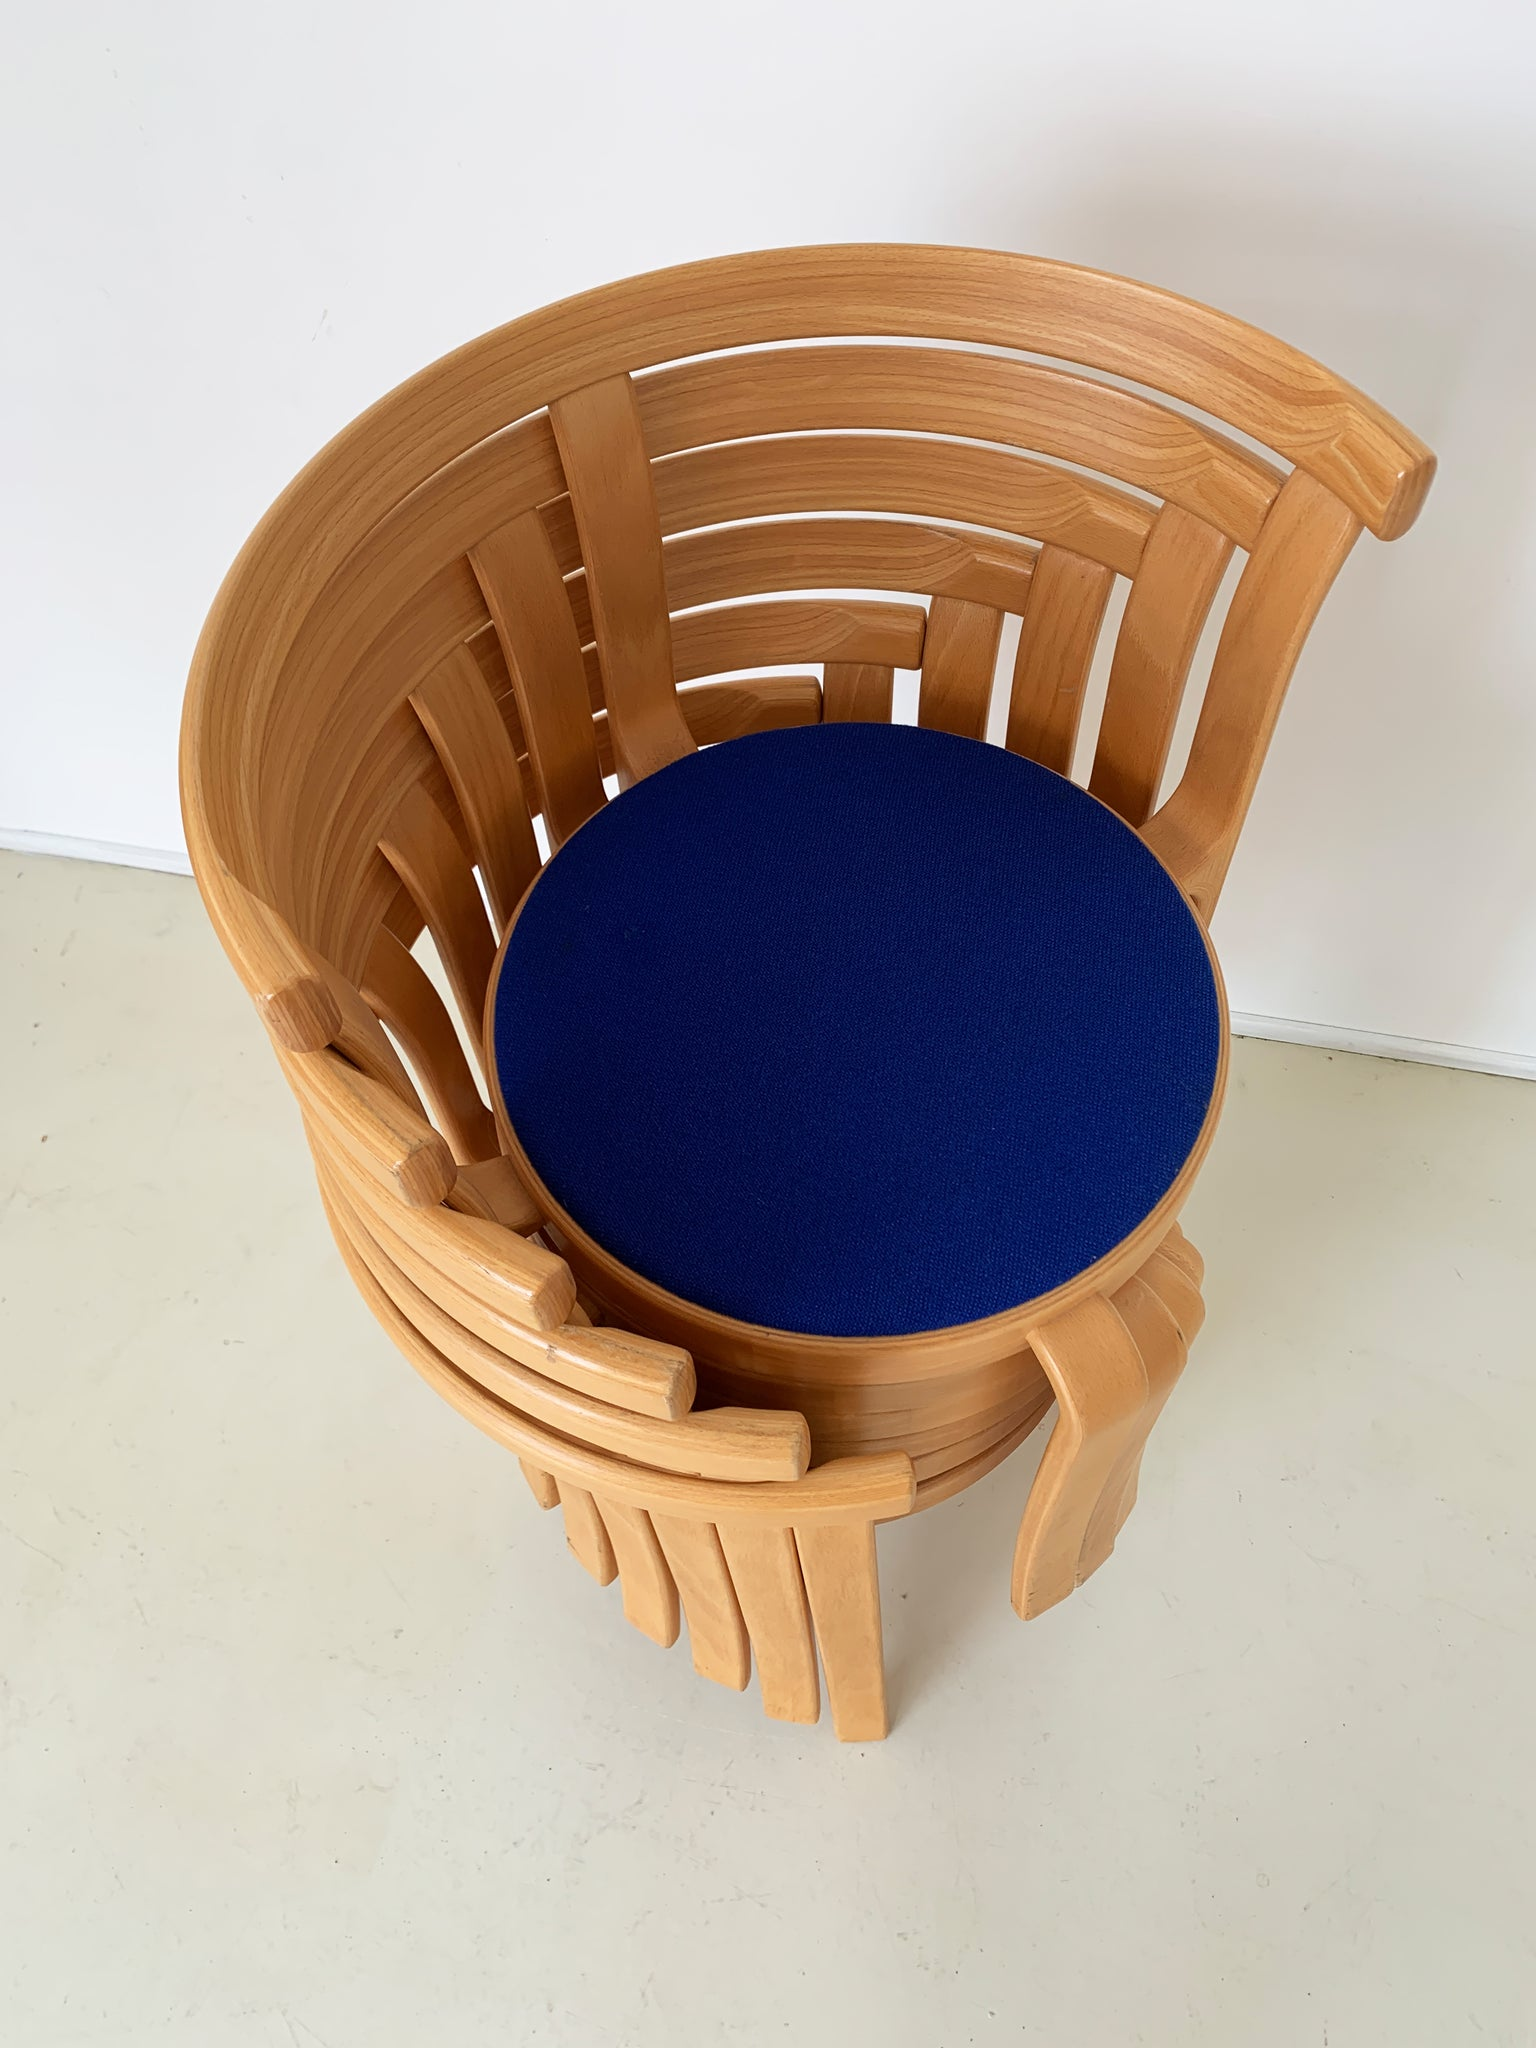 1980s Danish 8000 Series Beechwood Stacking Chairs by Magnus Olesen - Blue